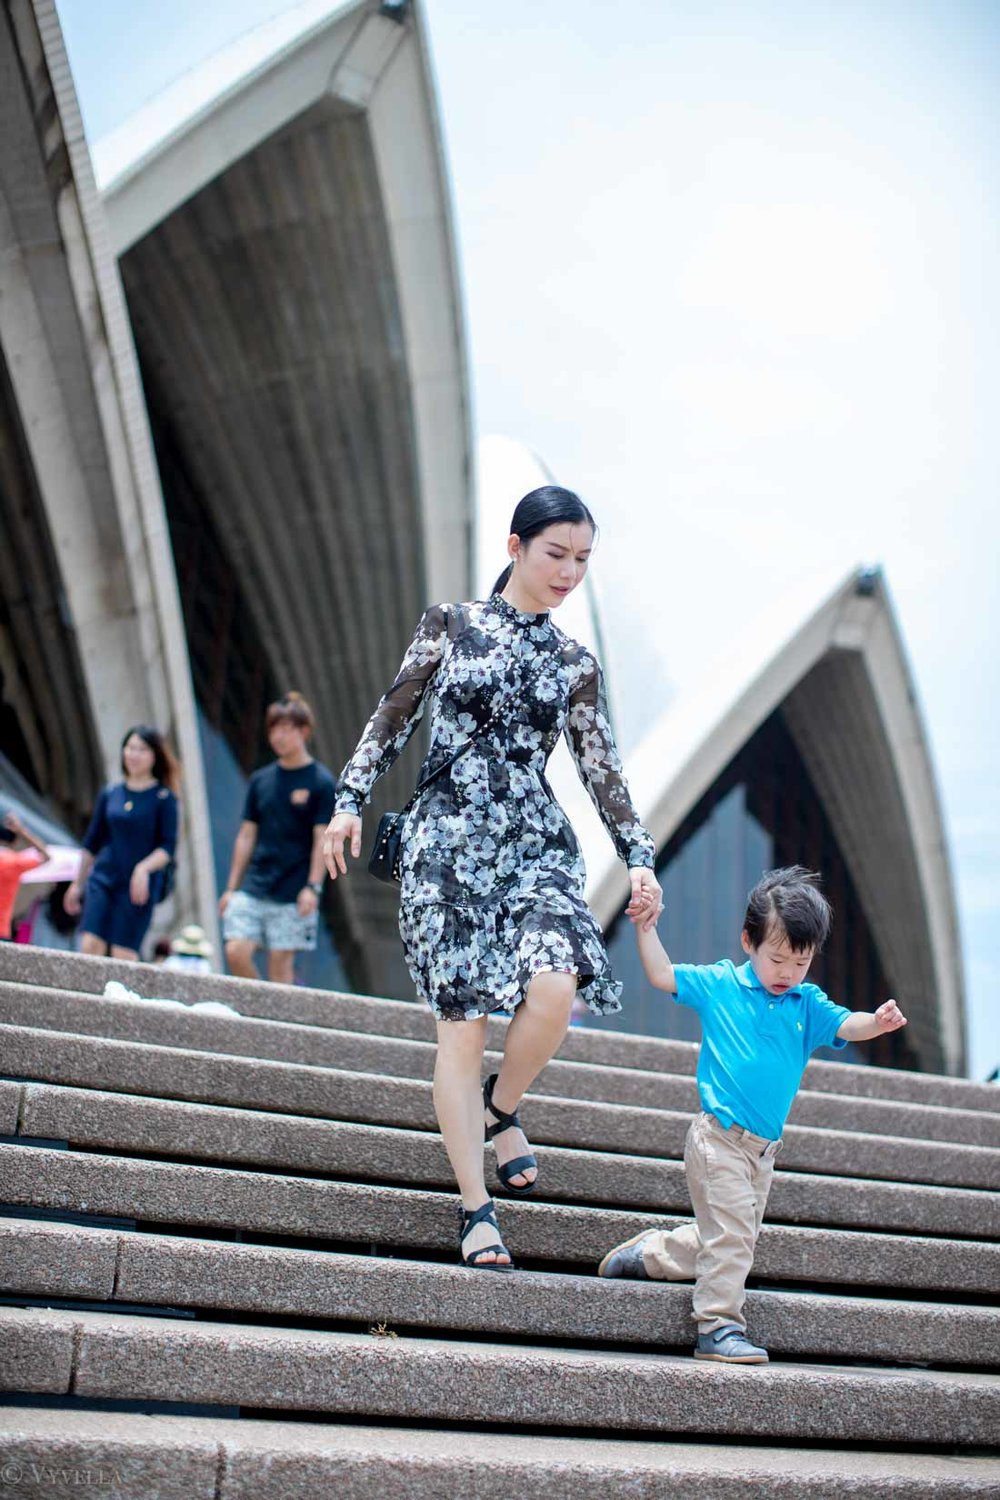 travel_sydney-opera-house_10.jpg